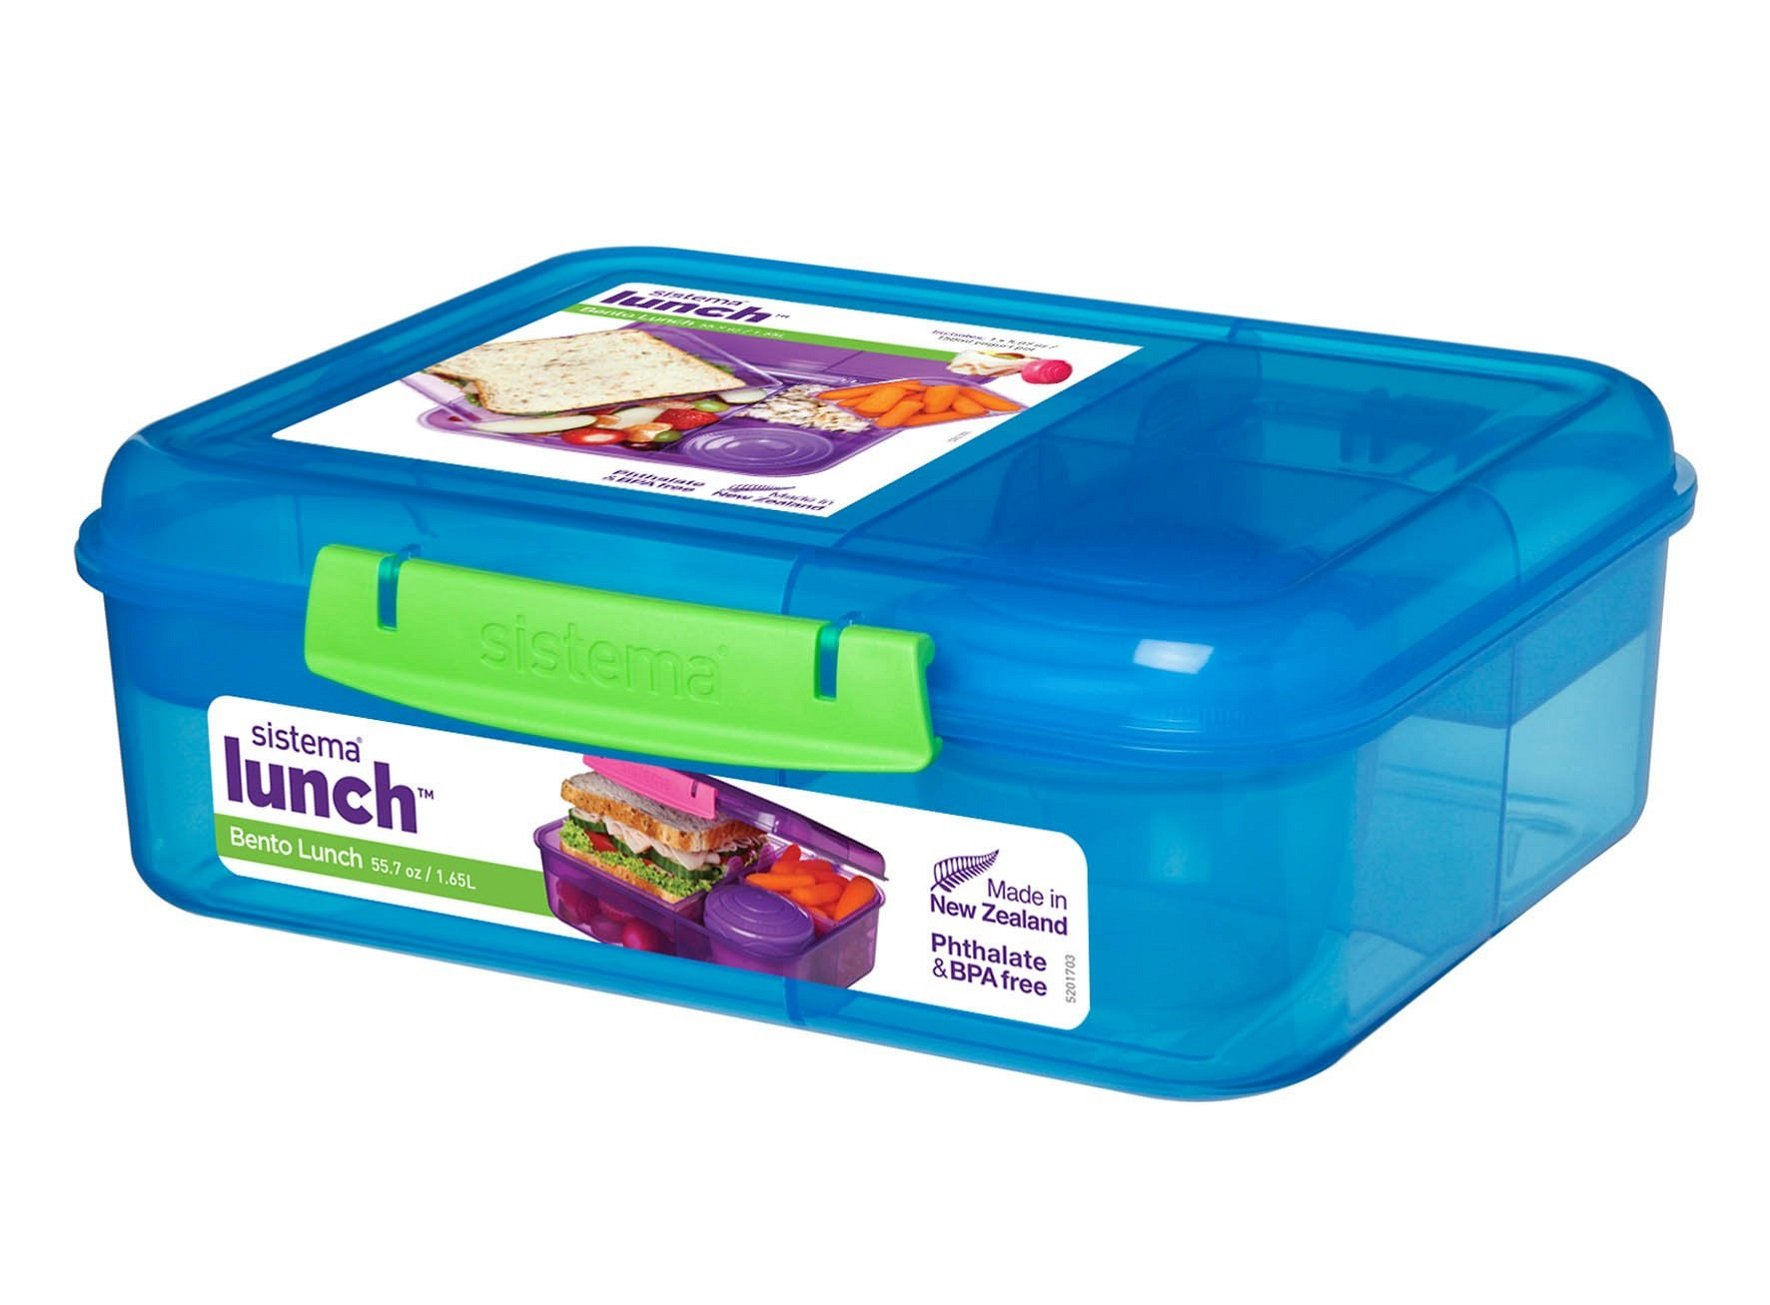 Sistema 41690 Collection Bento Lunch Box Solid Assorted Colors with Contrasting Klips, 6.9 Cup, Assorted Solid Colors/Contrasting Klips by Sistema